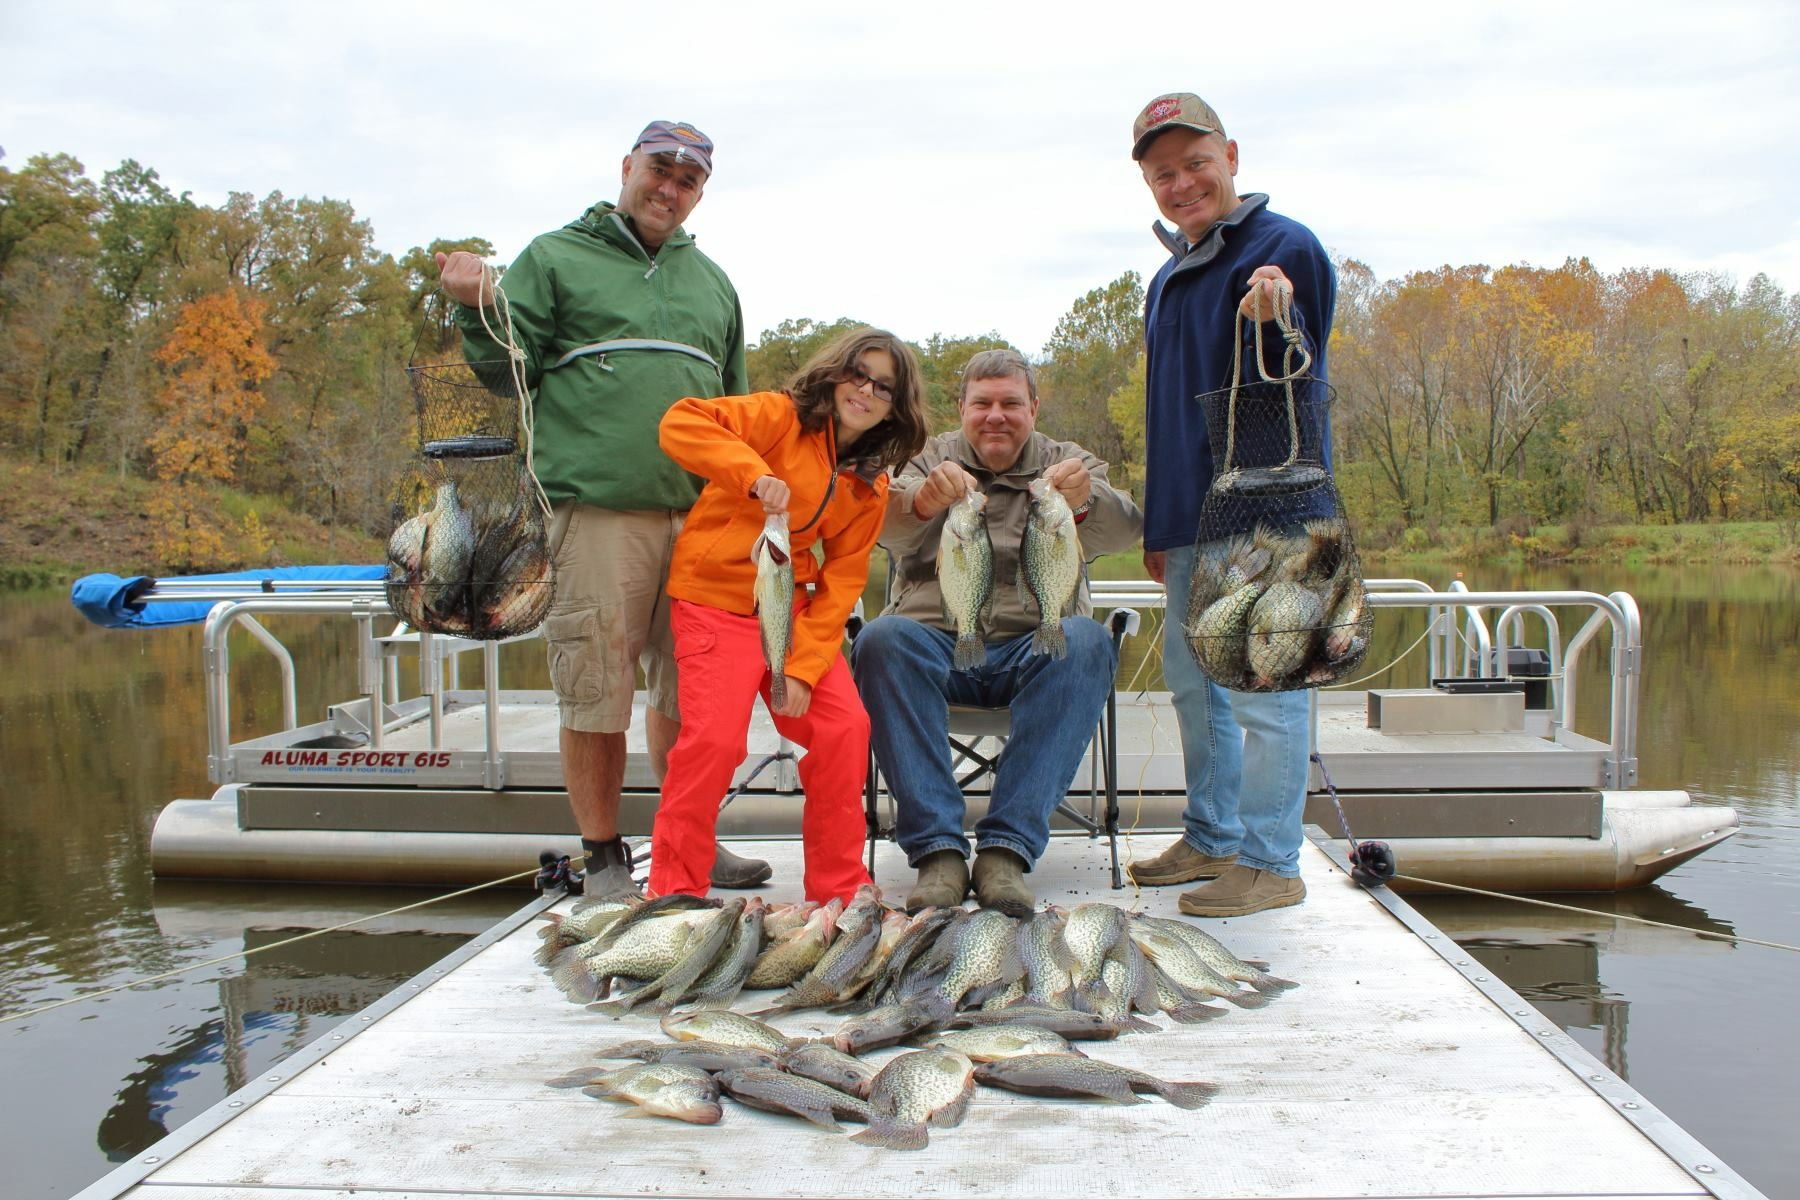 Mahoney Outdoors out of Missouri, uses one of our earlier model 615 Aluma Sport pontoons and also they have a Hotwoods all aluminum dock and walkway. As you see in this photo with these customers they guided, it was a very successful day with 78 crappie brought in. They released many back that were not kept.  Like we are always telling our customers, fishing from a Hotwoods pontoon boat is like standing on the water with the low center of gravity and wide foot print we give you with our design that is built into all 5 models we manufacture.  This was a great day on the lake. You might want to get ahold of these guys if you want to get some real action with crappie in Missouri.